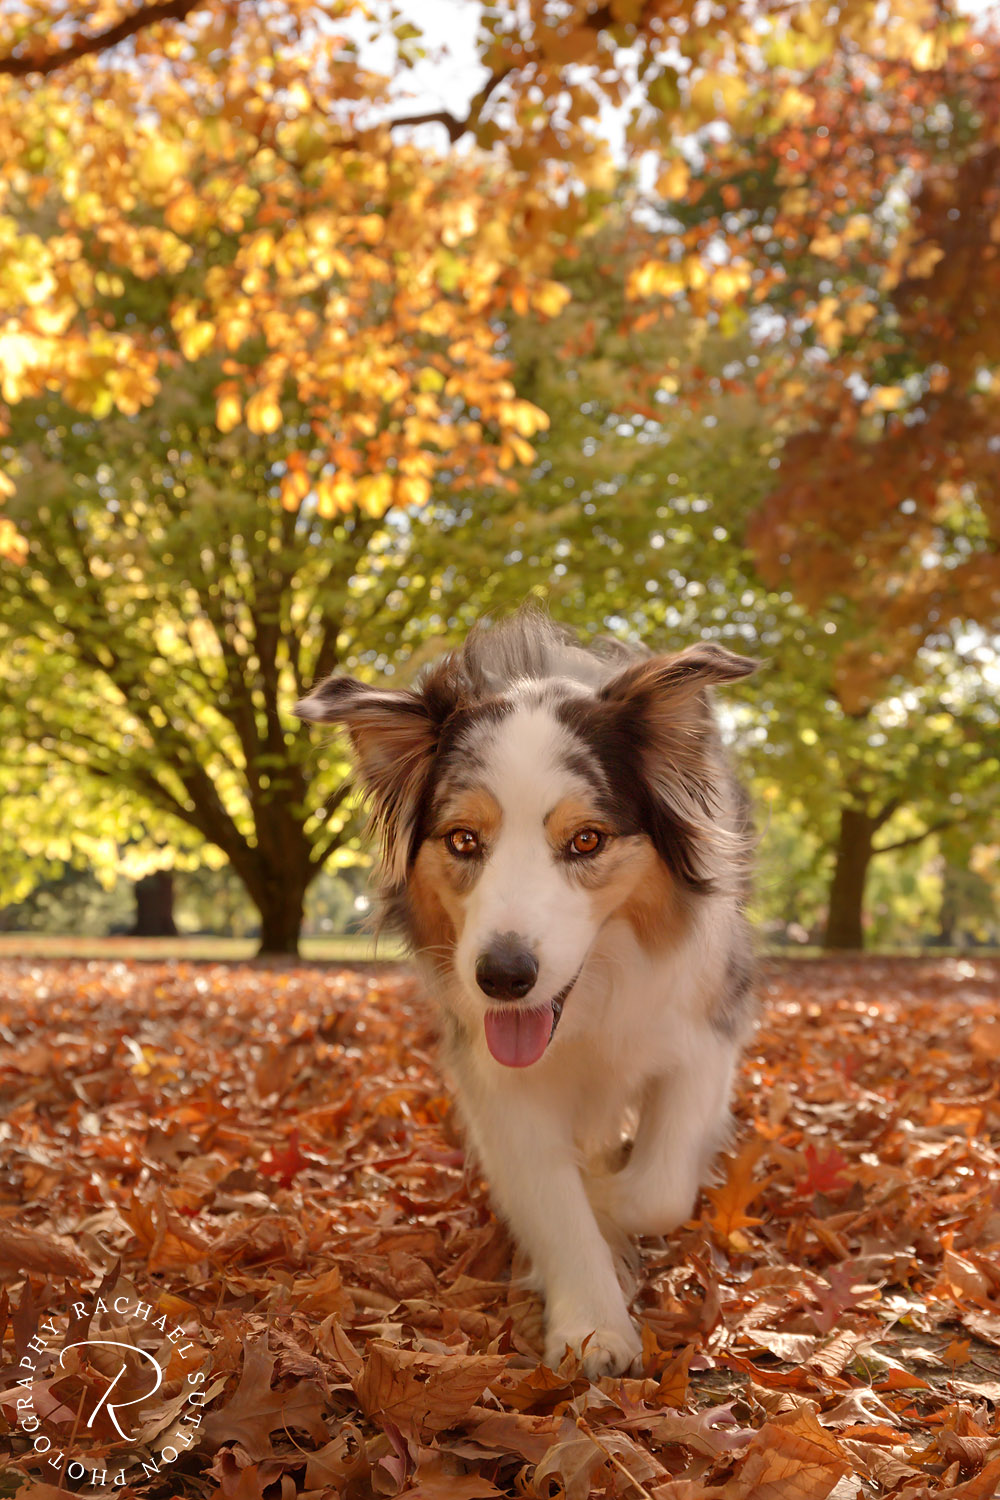 pet photography, Aussie, dog in Autumn leaves in Blenheim, New Zealand